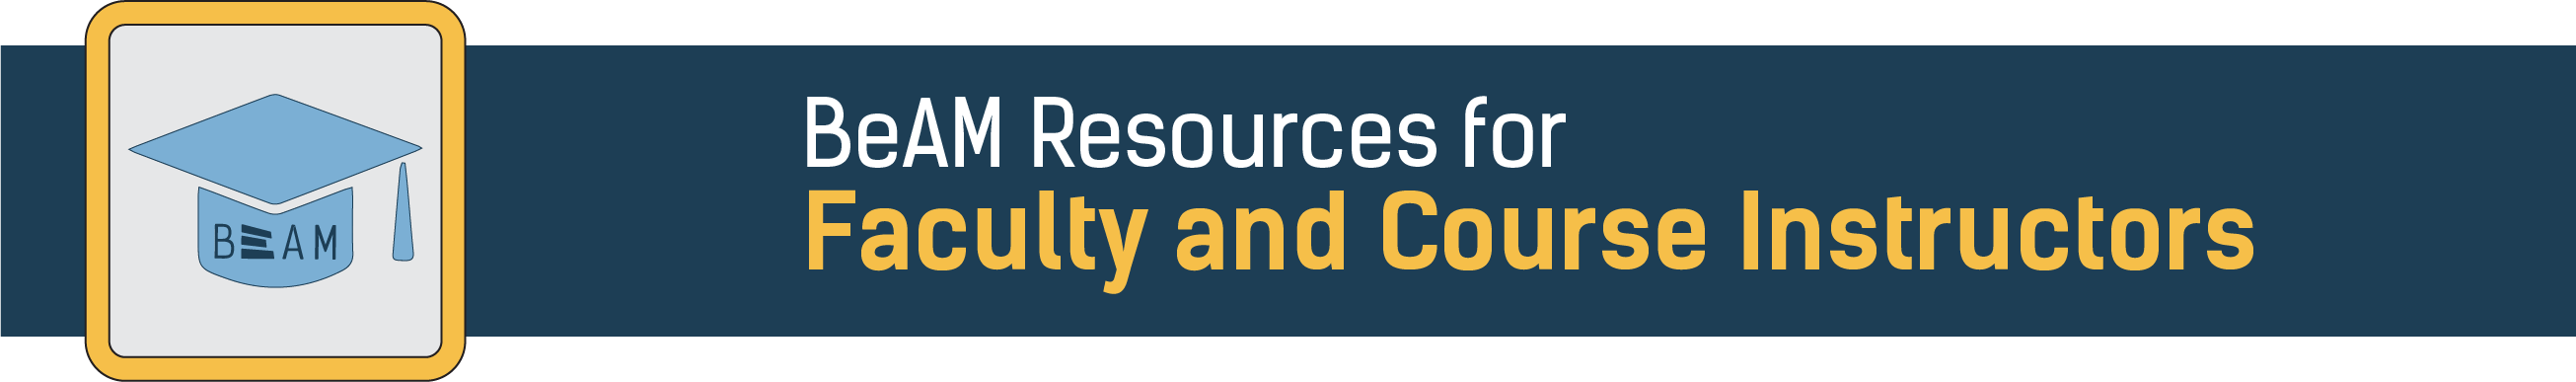 BeAM Resources for Faculty and Course Instructors